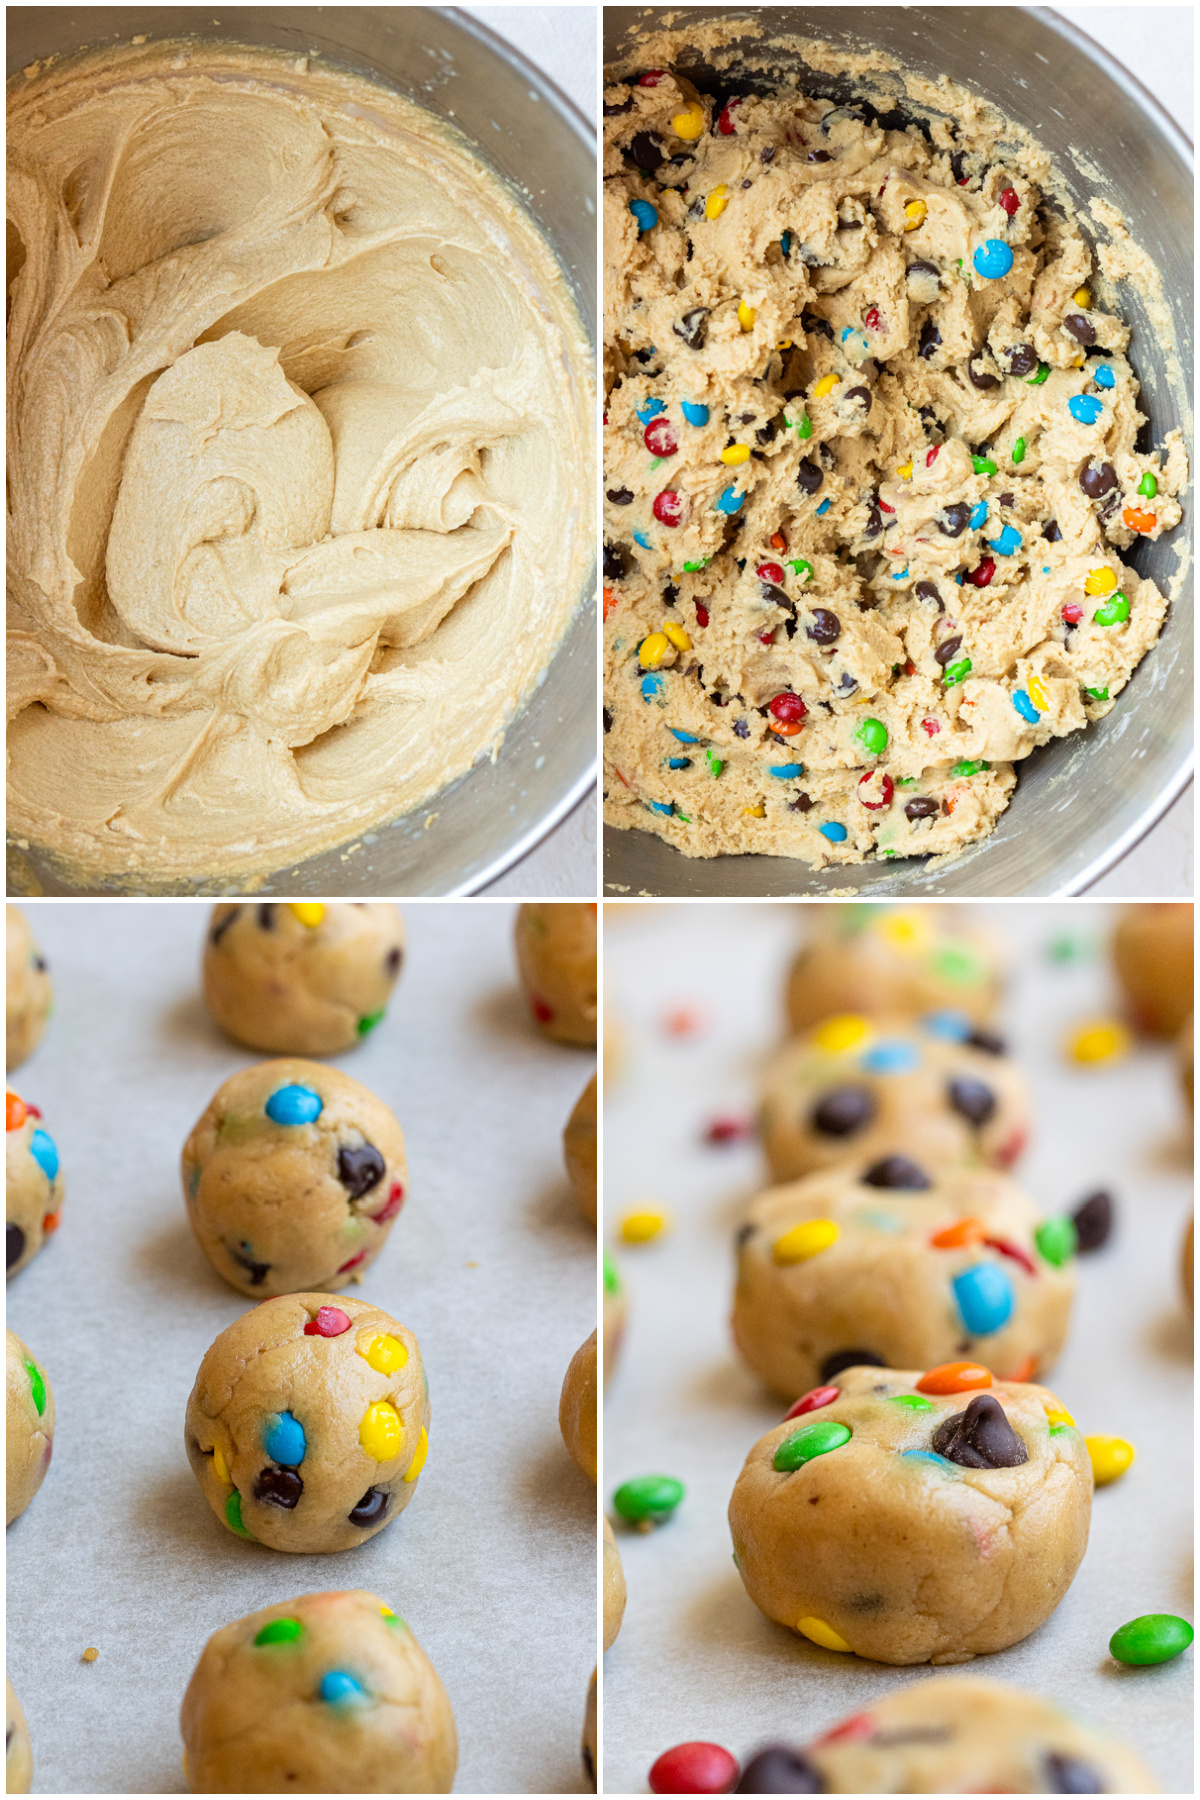 Step by step photos on how to make Chocolate Chip Peanut Butter Cookiese